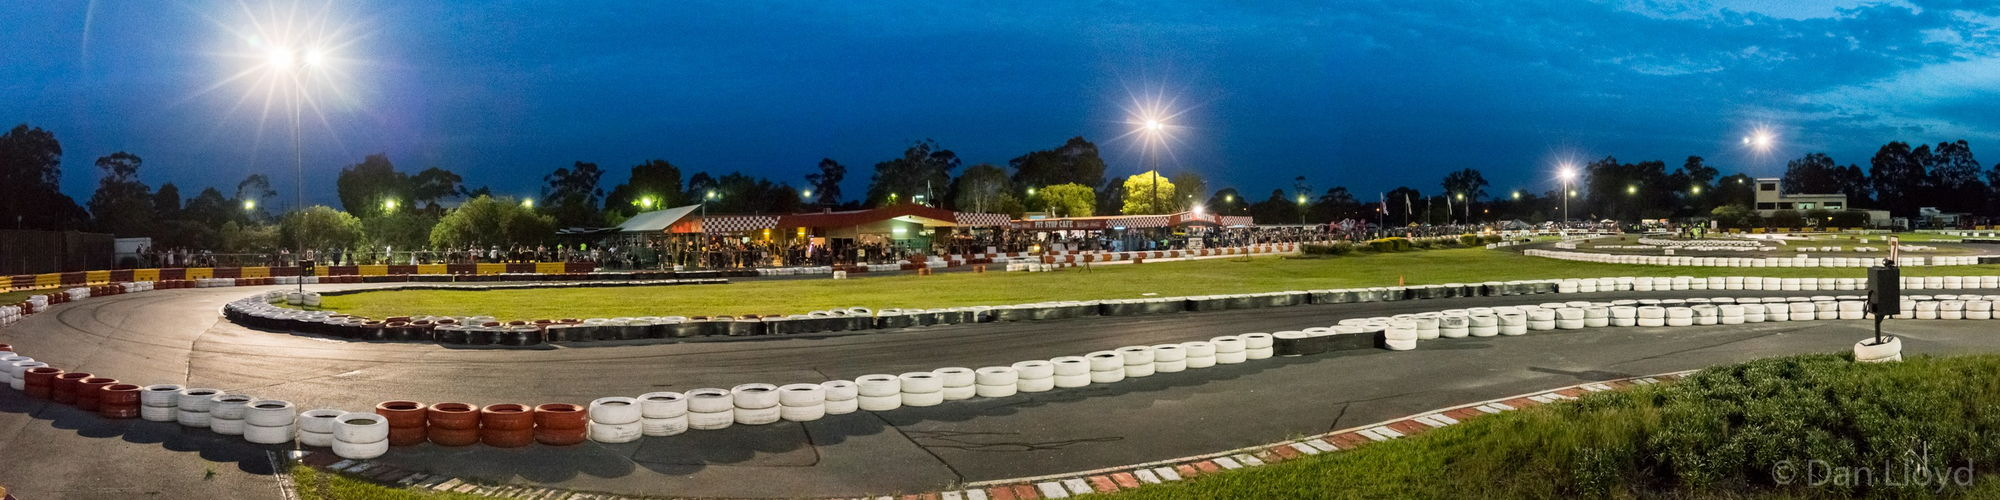 Kingston Park Raceway cover image